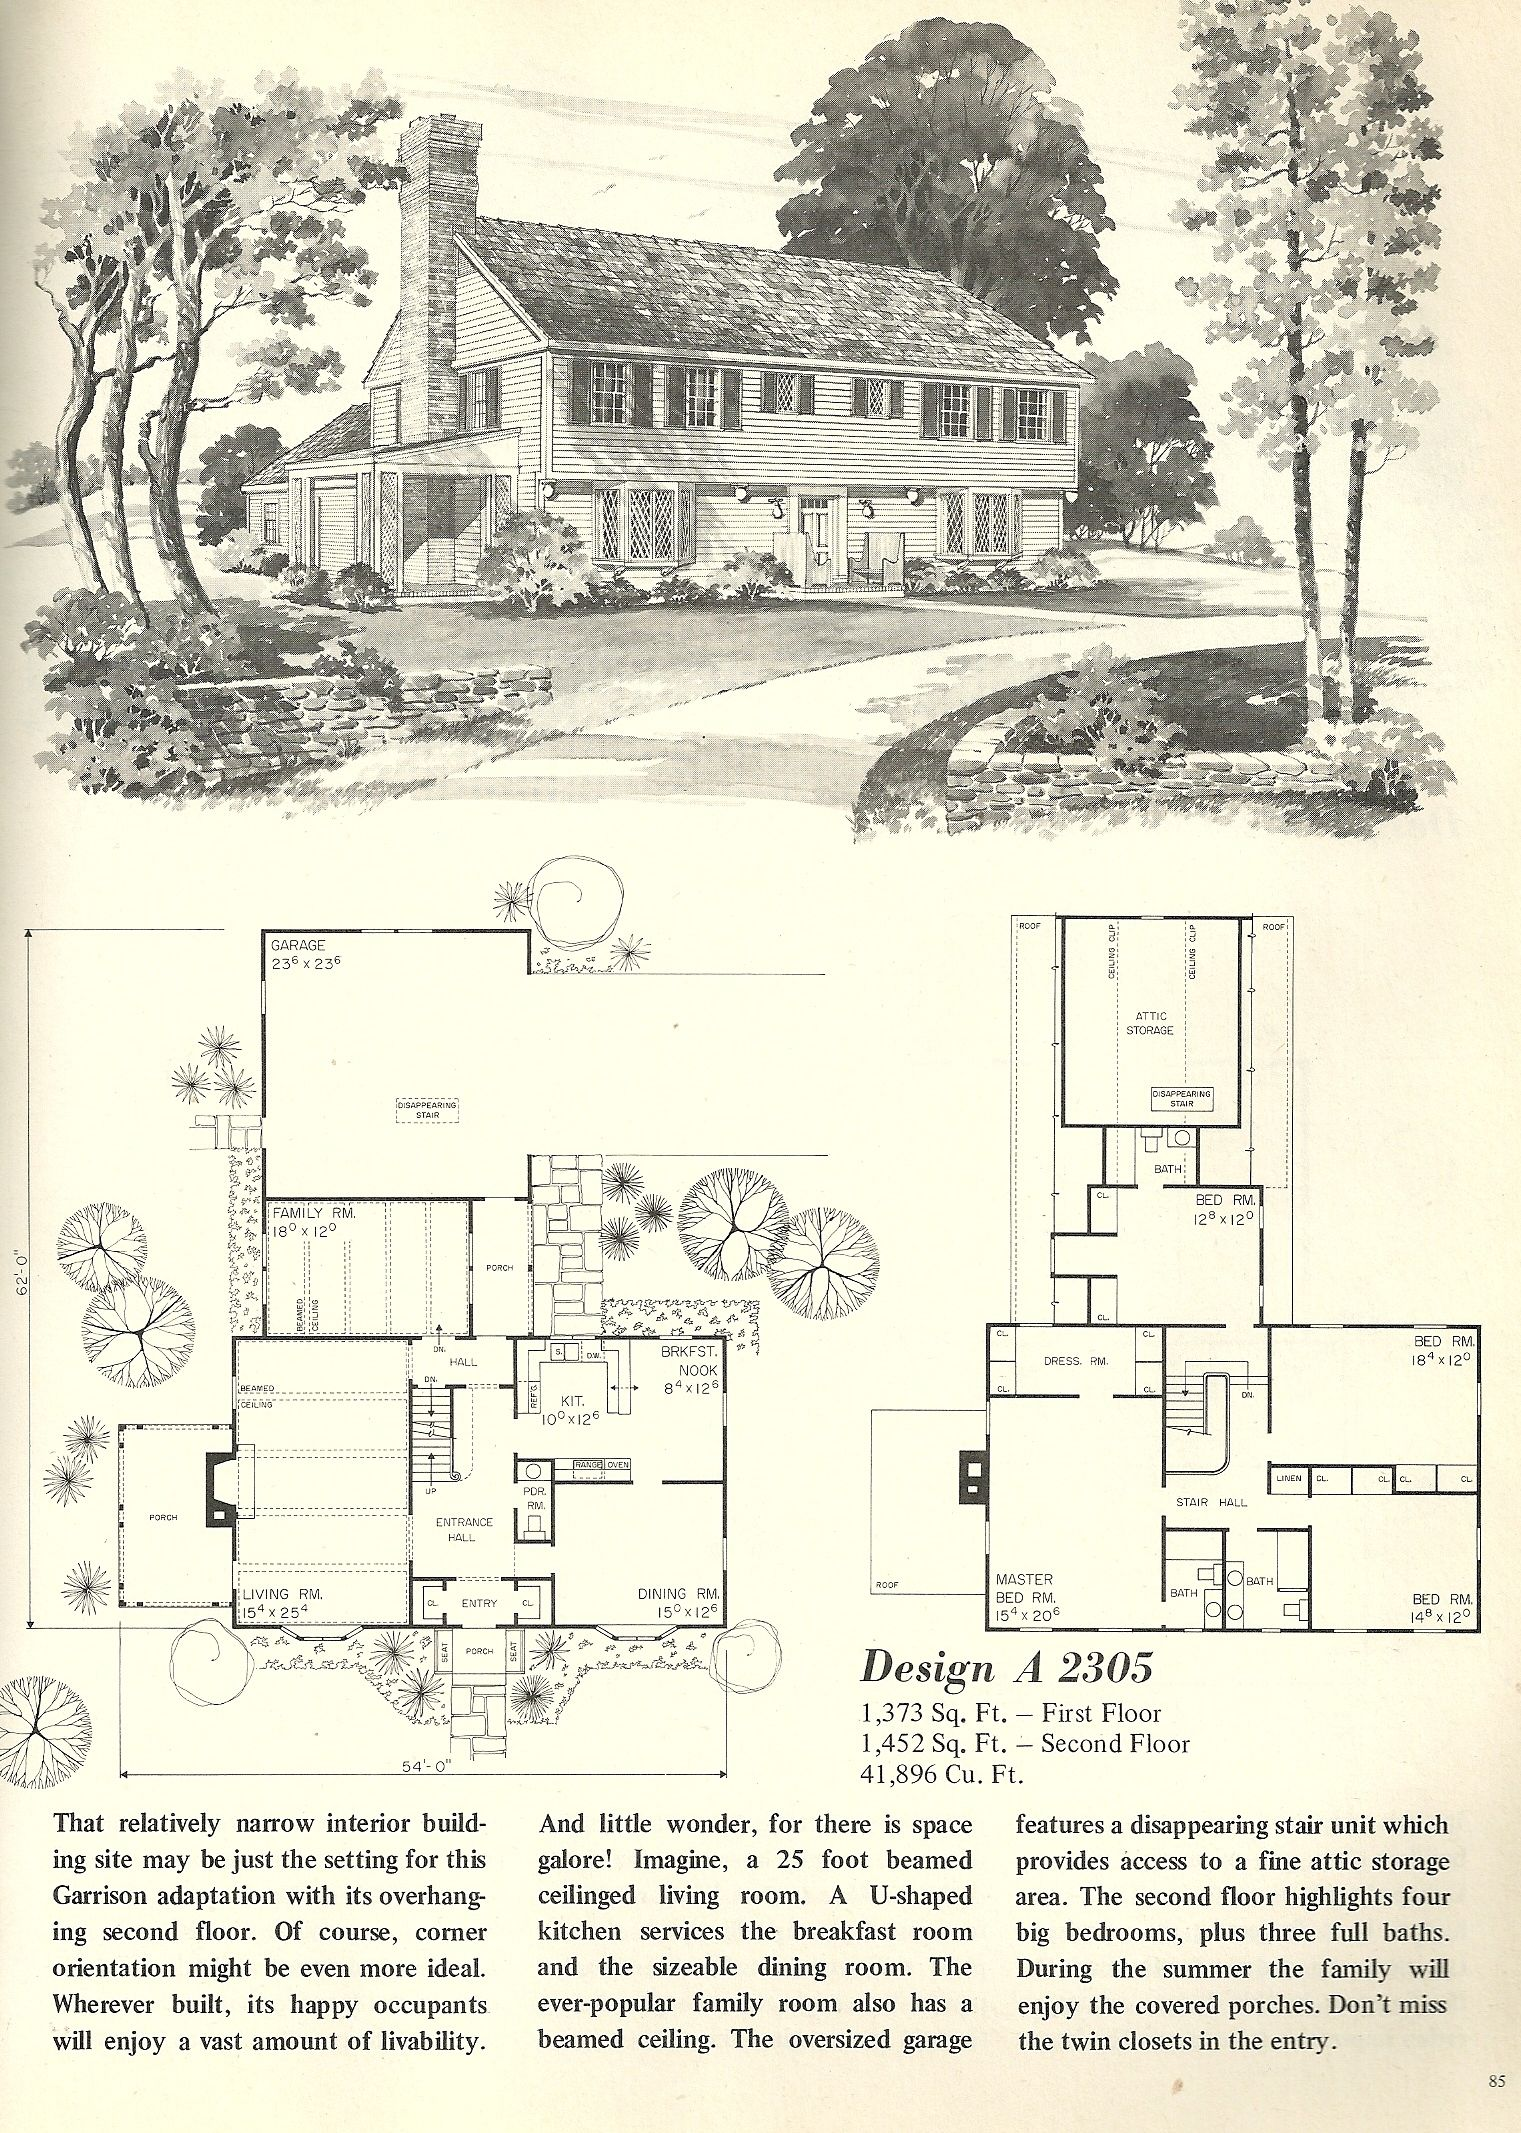 Vintage House Plans 2305 Colonial House Plans Vintage House Plans House Plans Farmhouse